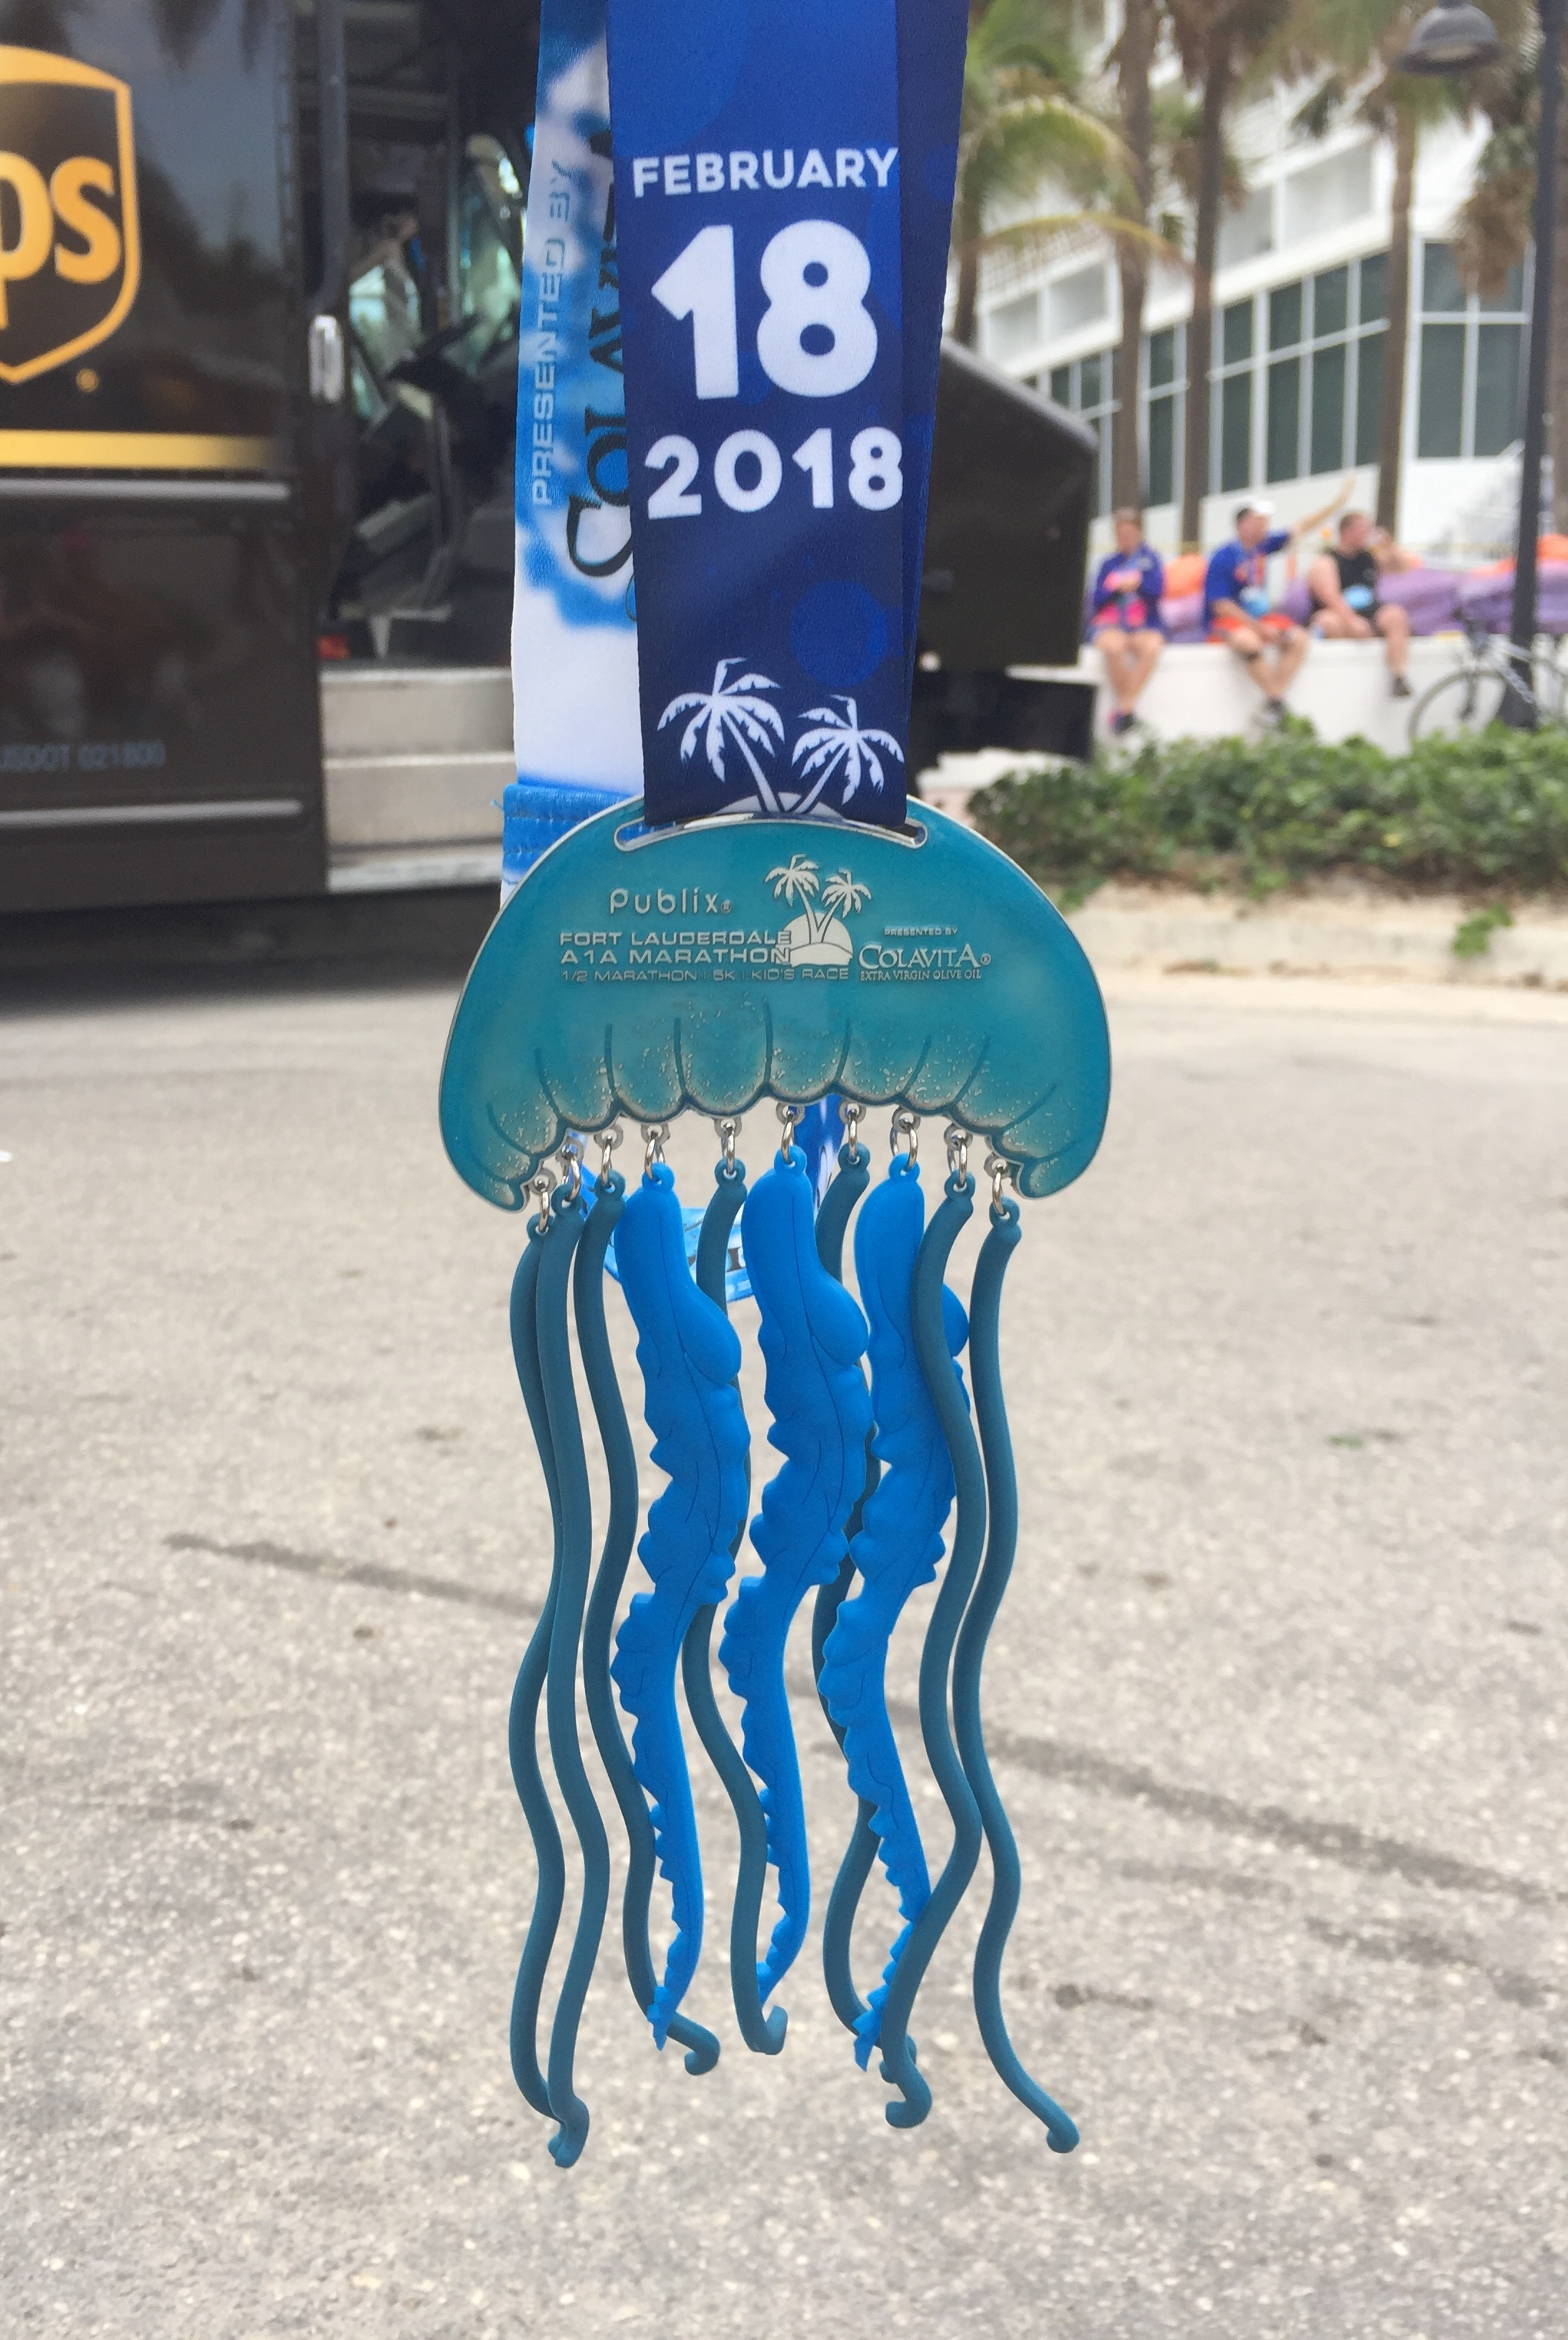 Definitely the award for most unique and creative medal!!!